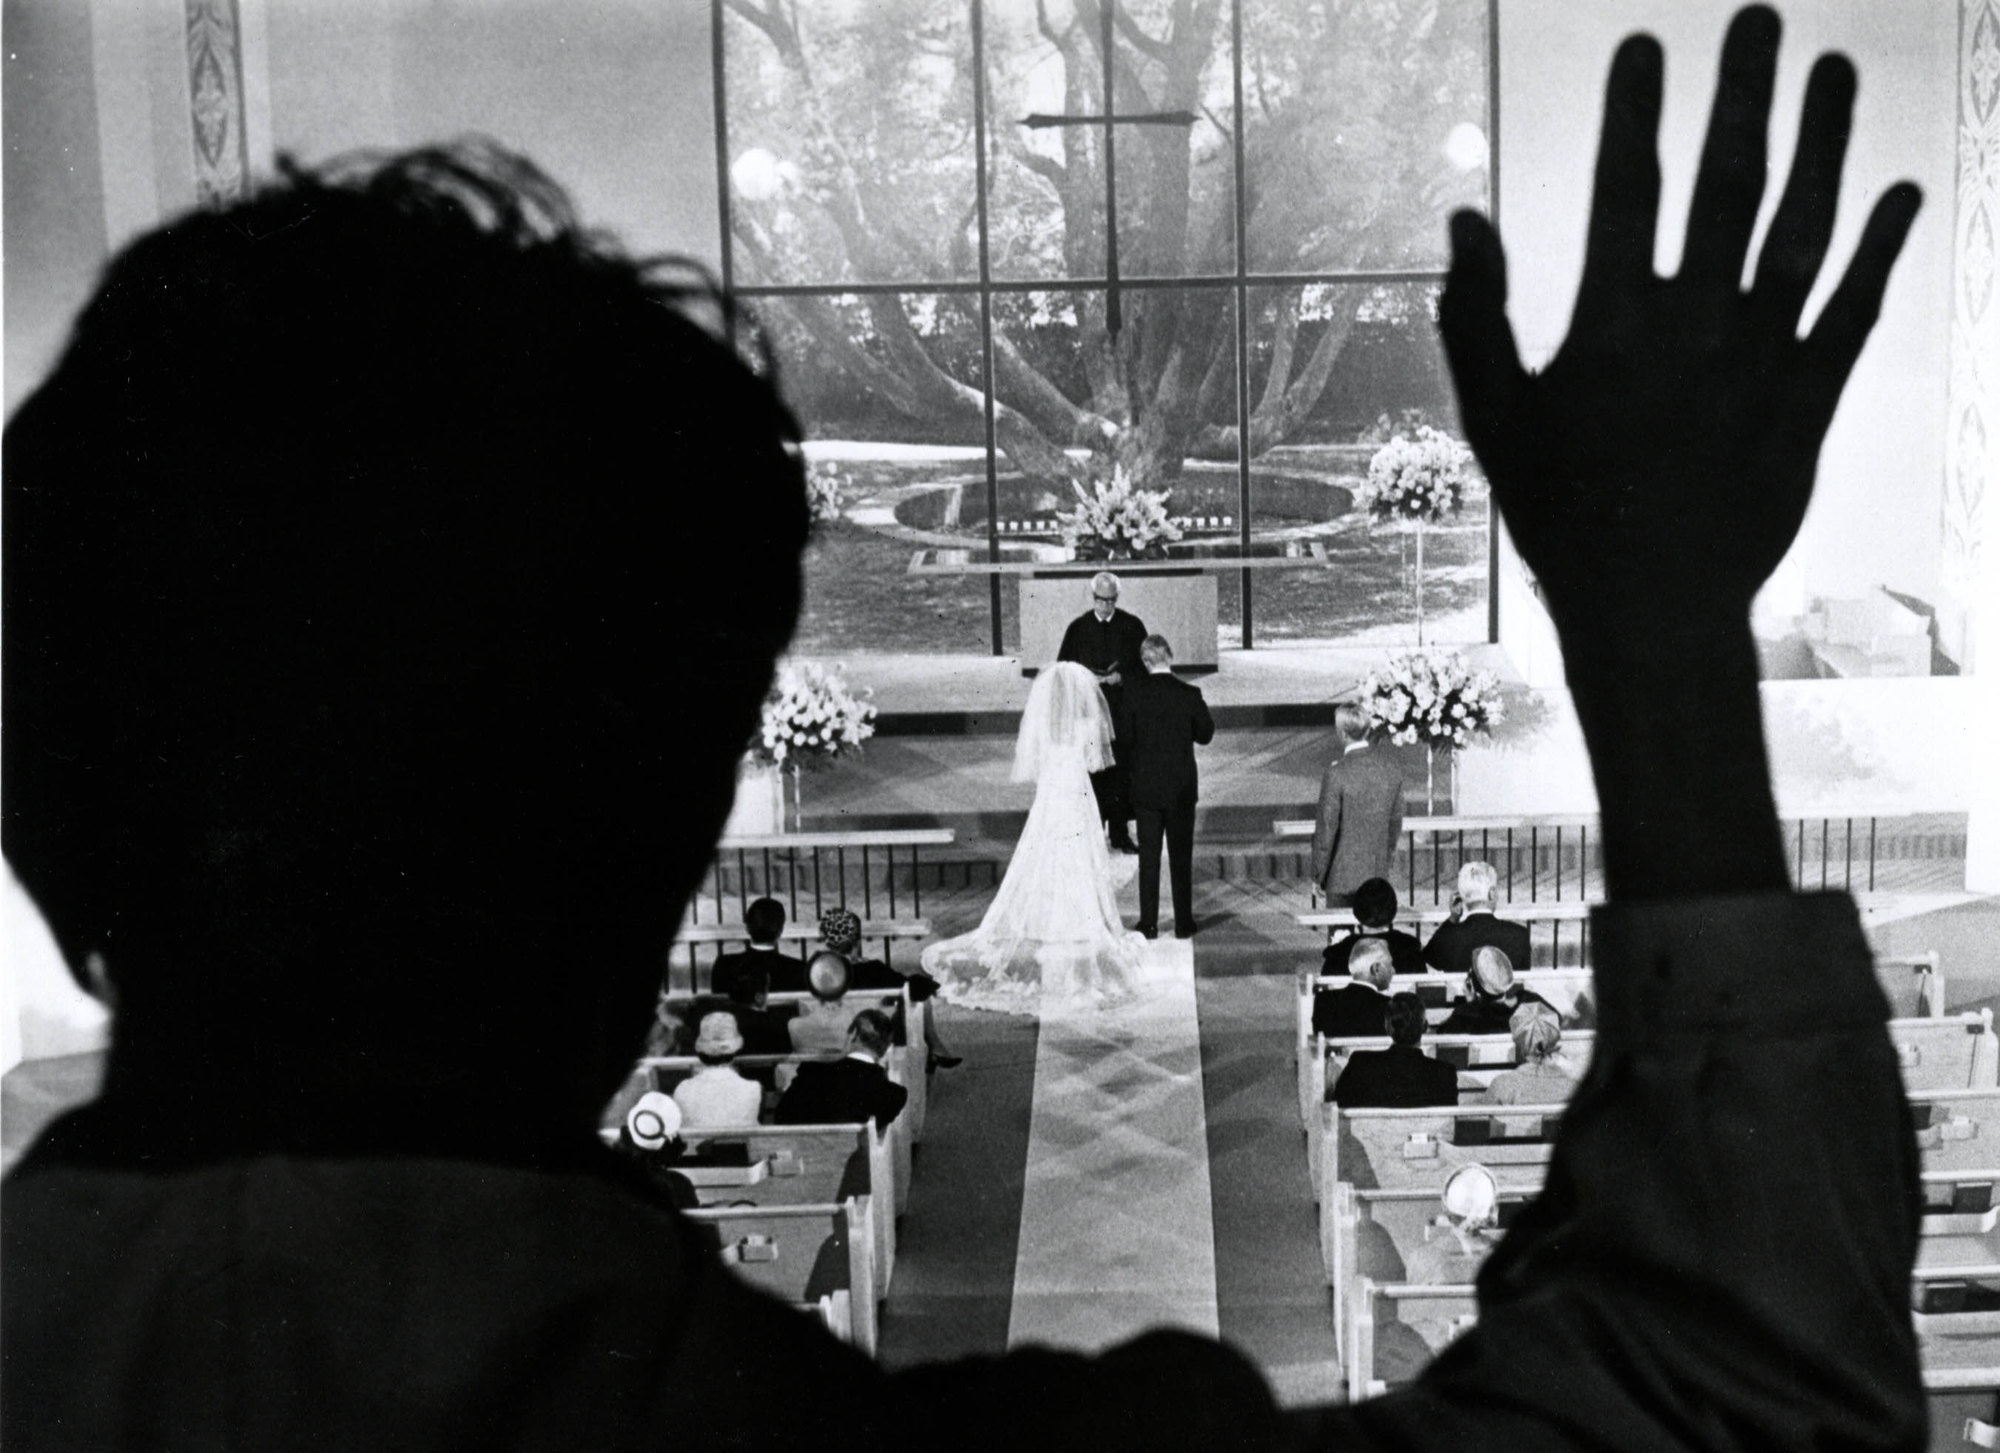 An image from the Graduate of Benjamin looking down at Elaine's wedding